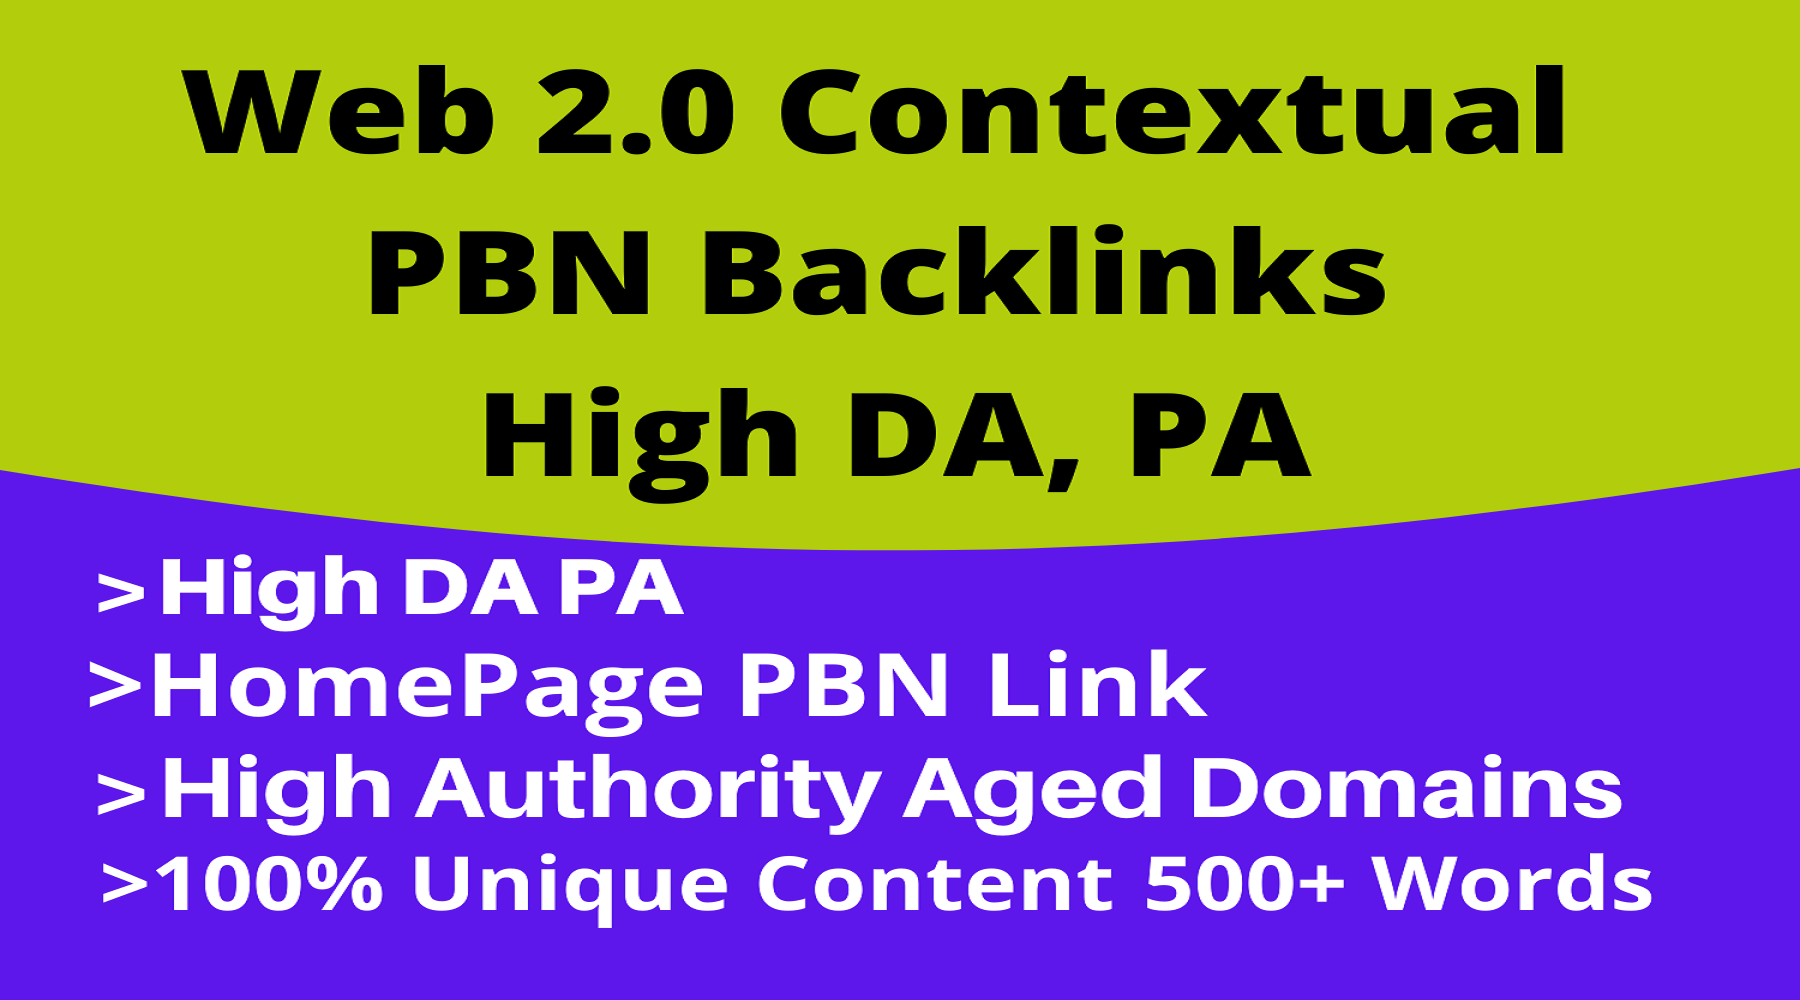 45 Web 2.0 Contextual PBN Backlinks Get Website Ranks Fast